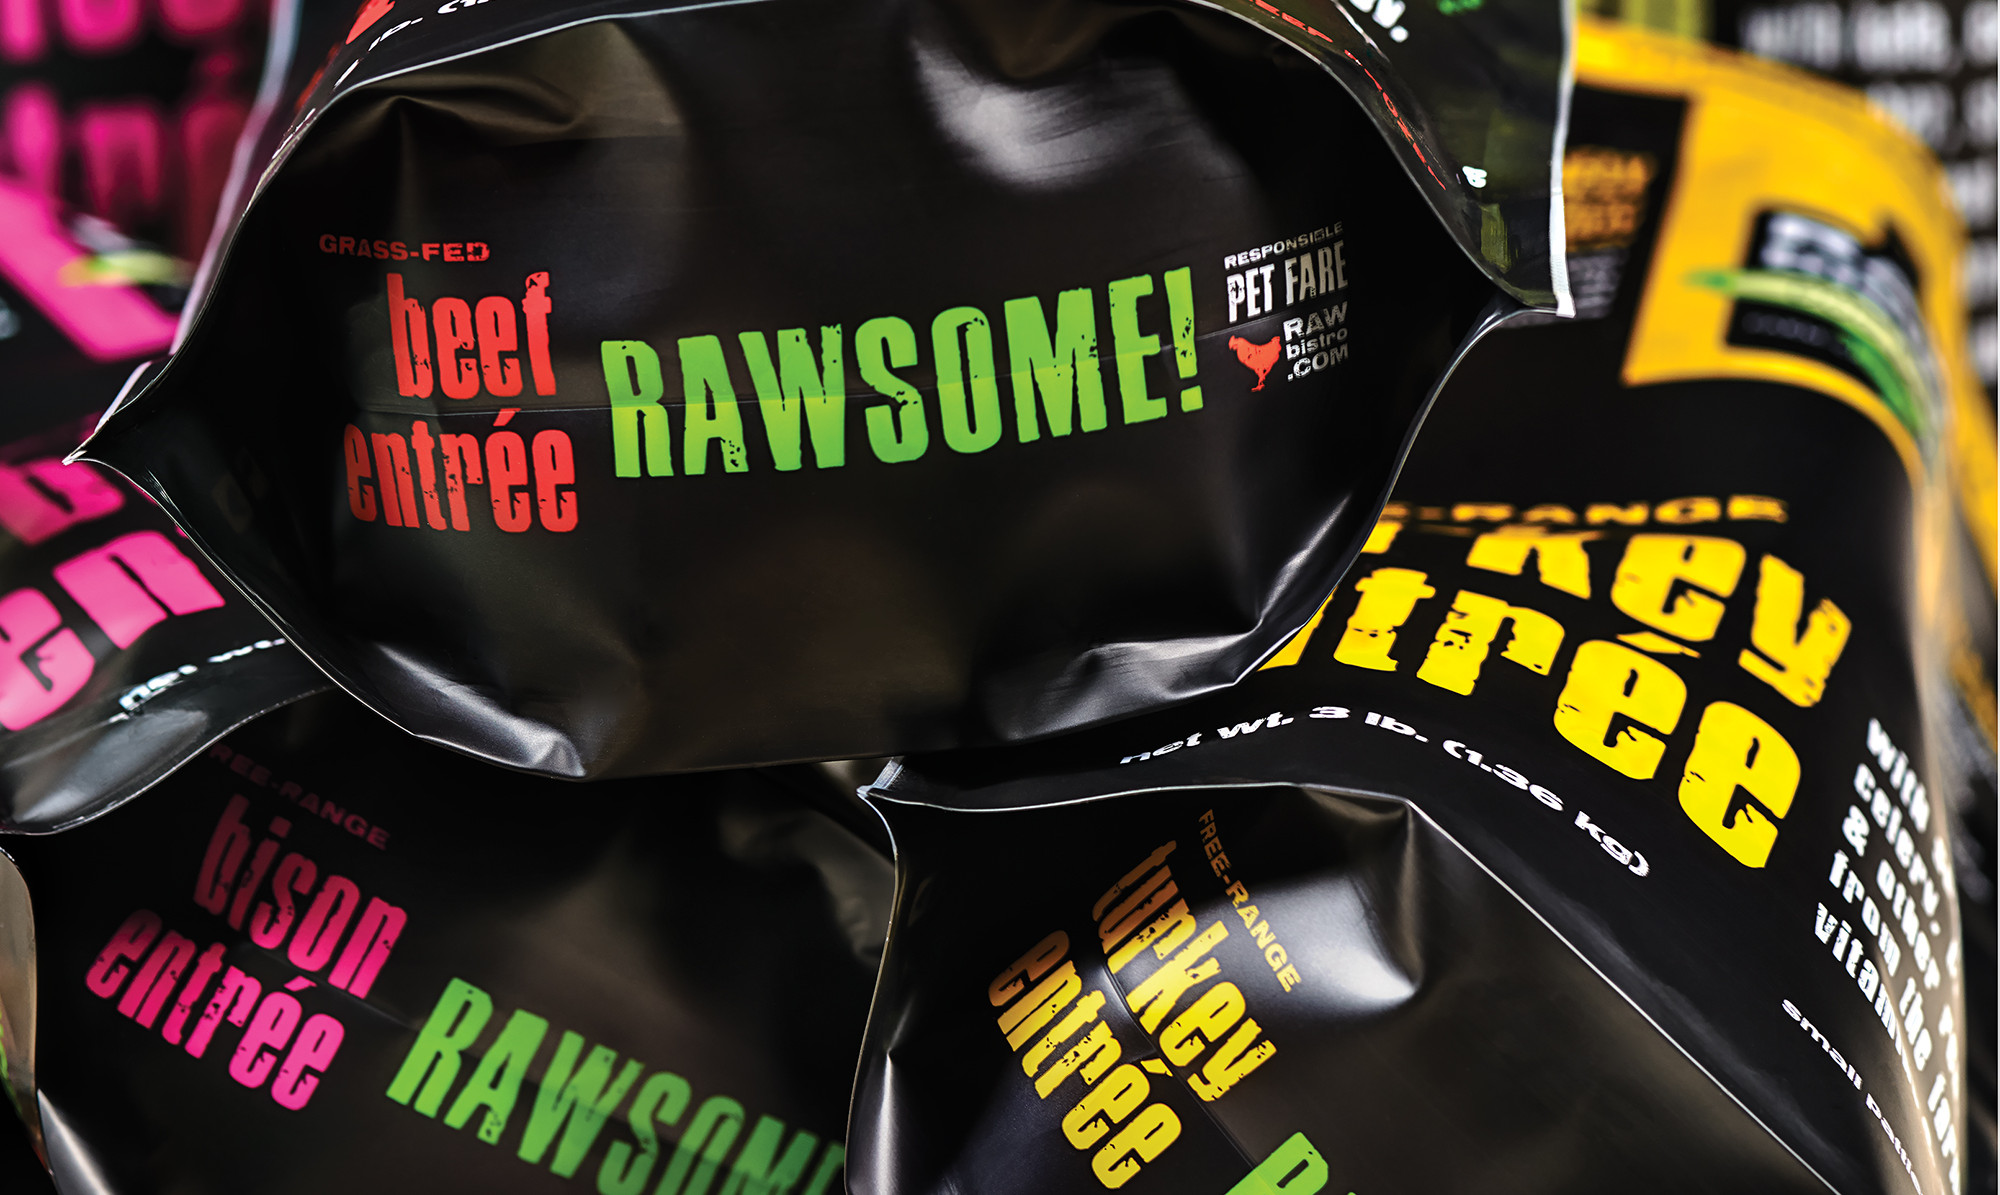 Rawesome